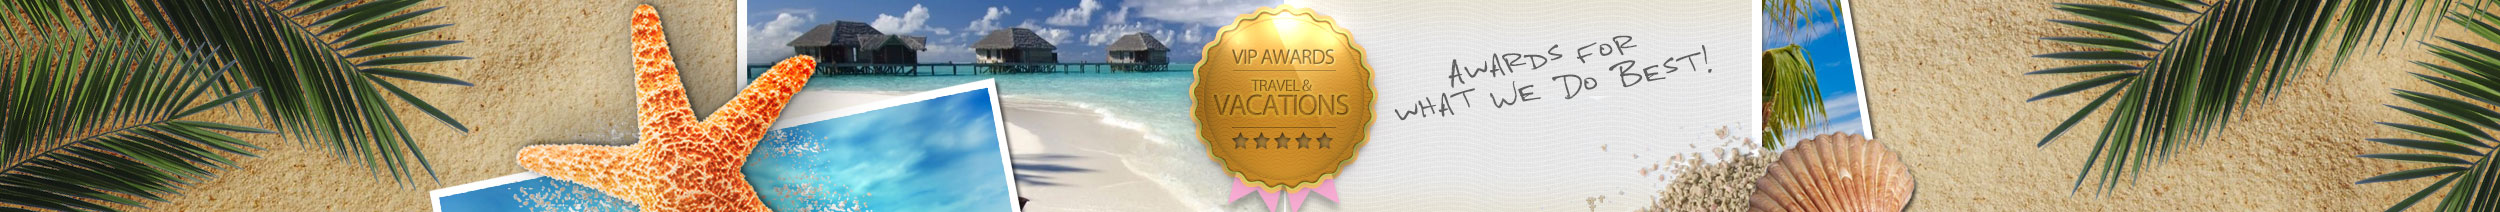 VIP Vacations Wins Hard Rock 2016 Awards